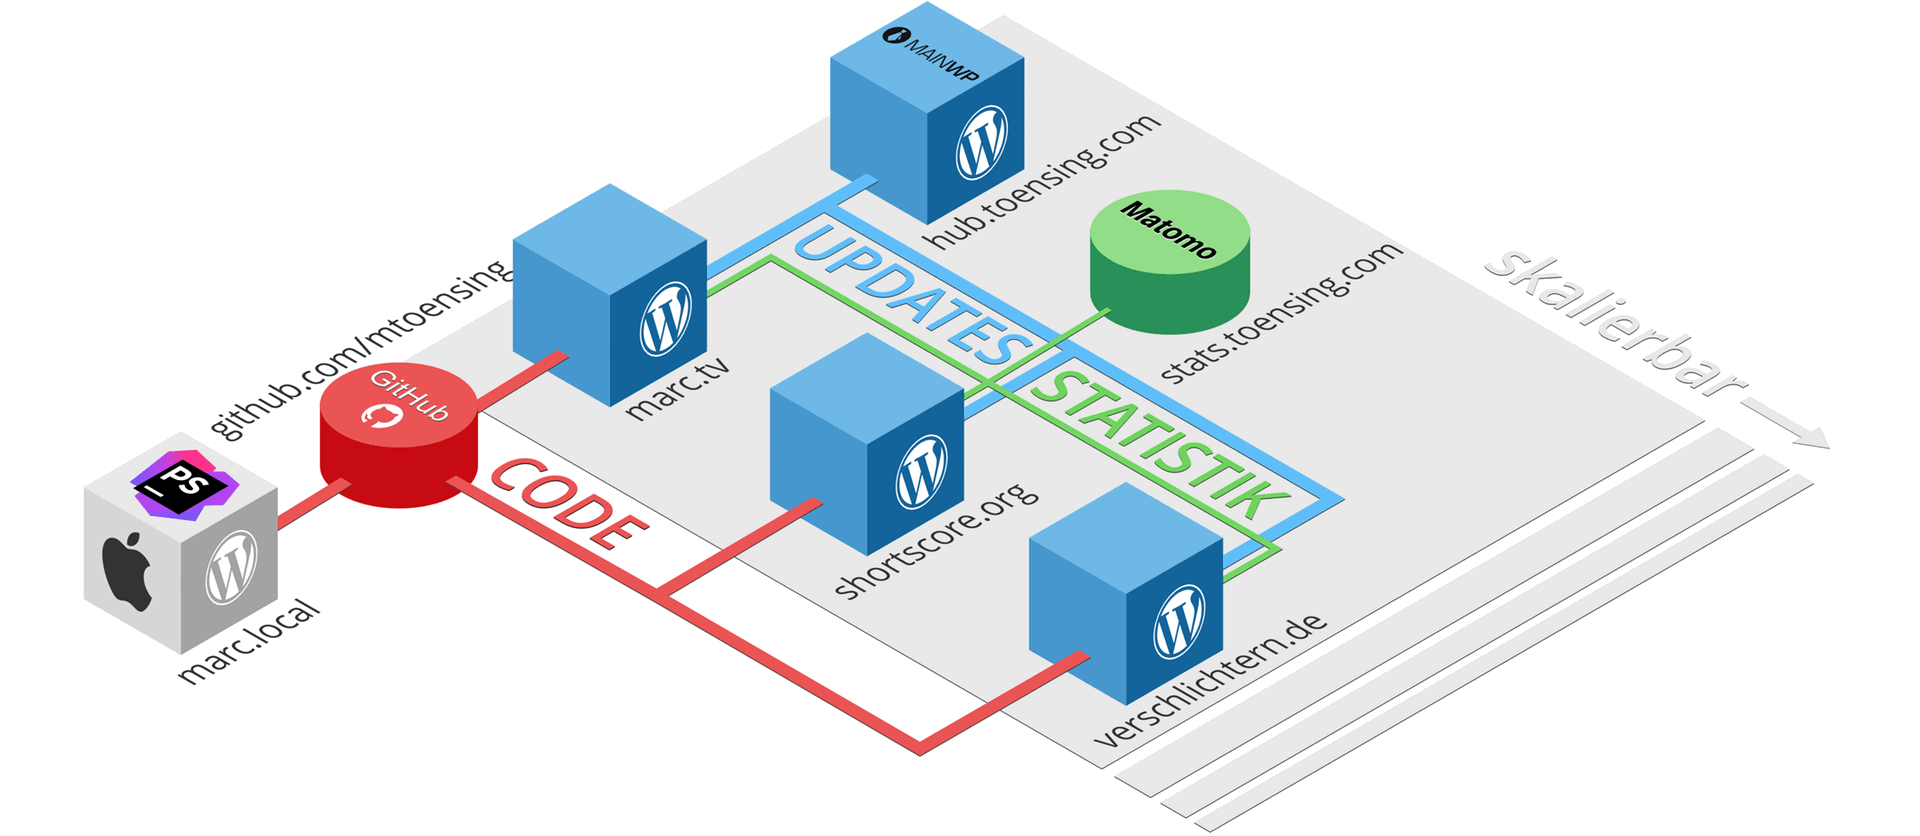 Main WP and GItHub für Wordpress Deploment auf shared hosts